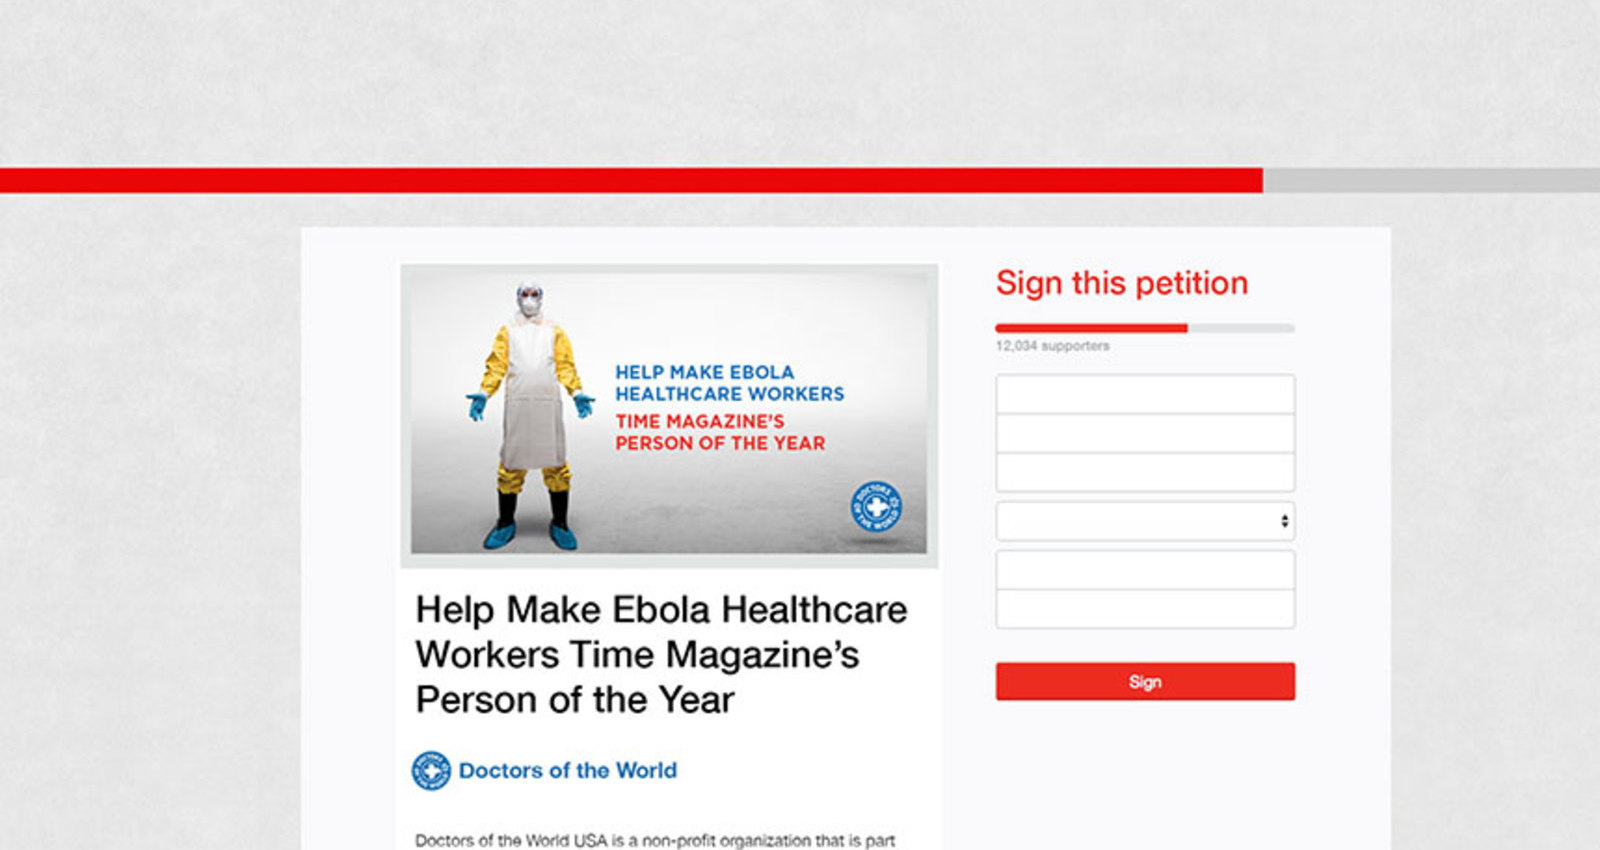 Getting Ebola Fighters on the Cover of Time